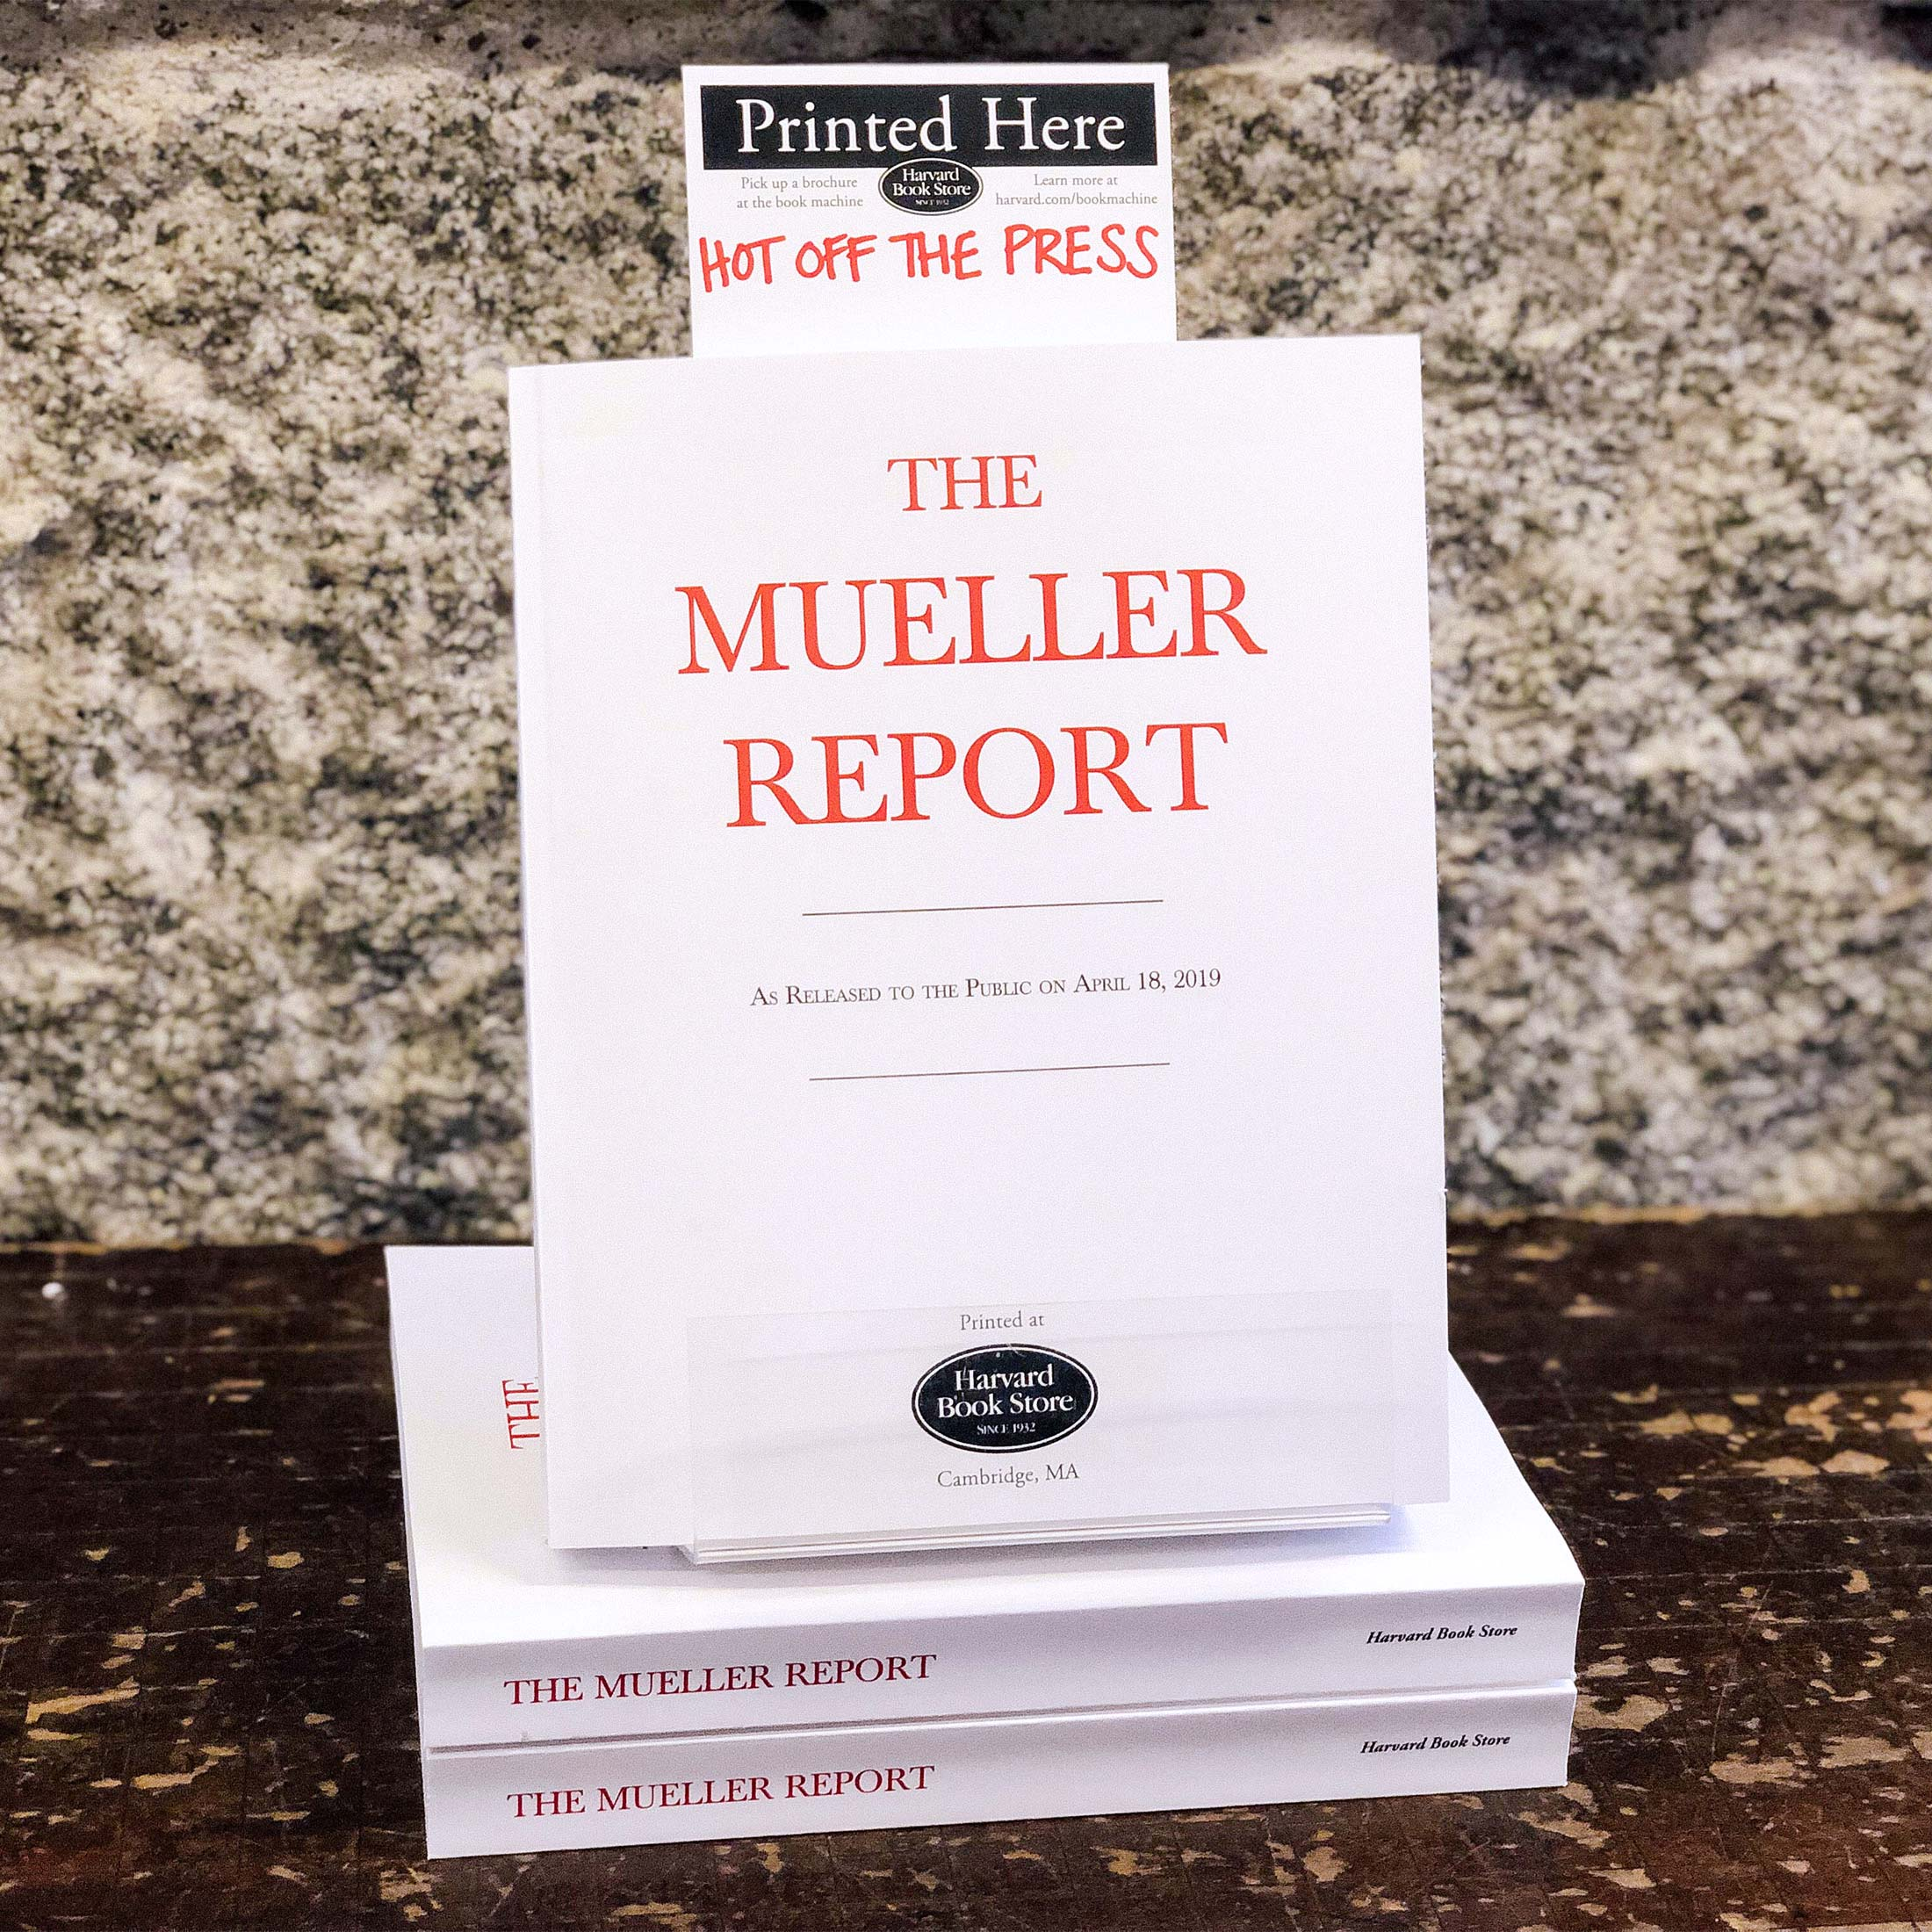 Display of bound copies of the Mueller report at the Harvard Book Store.